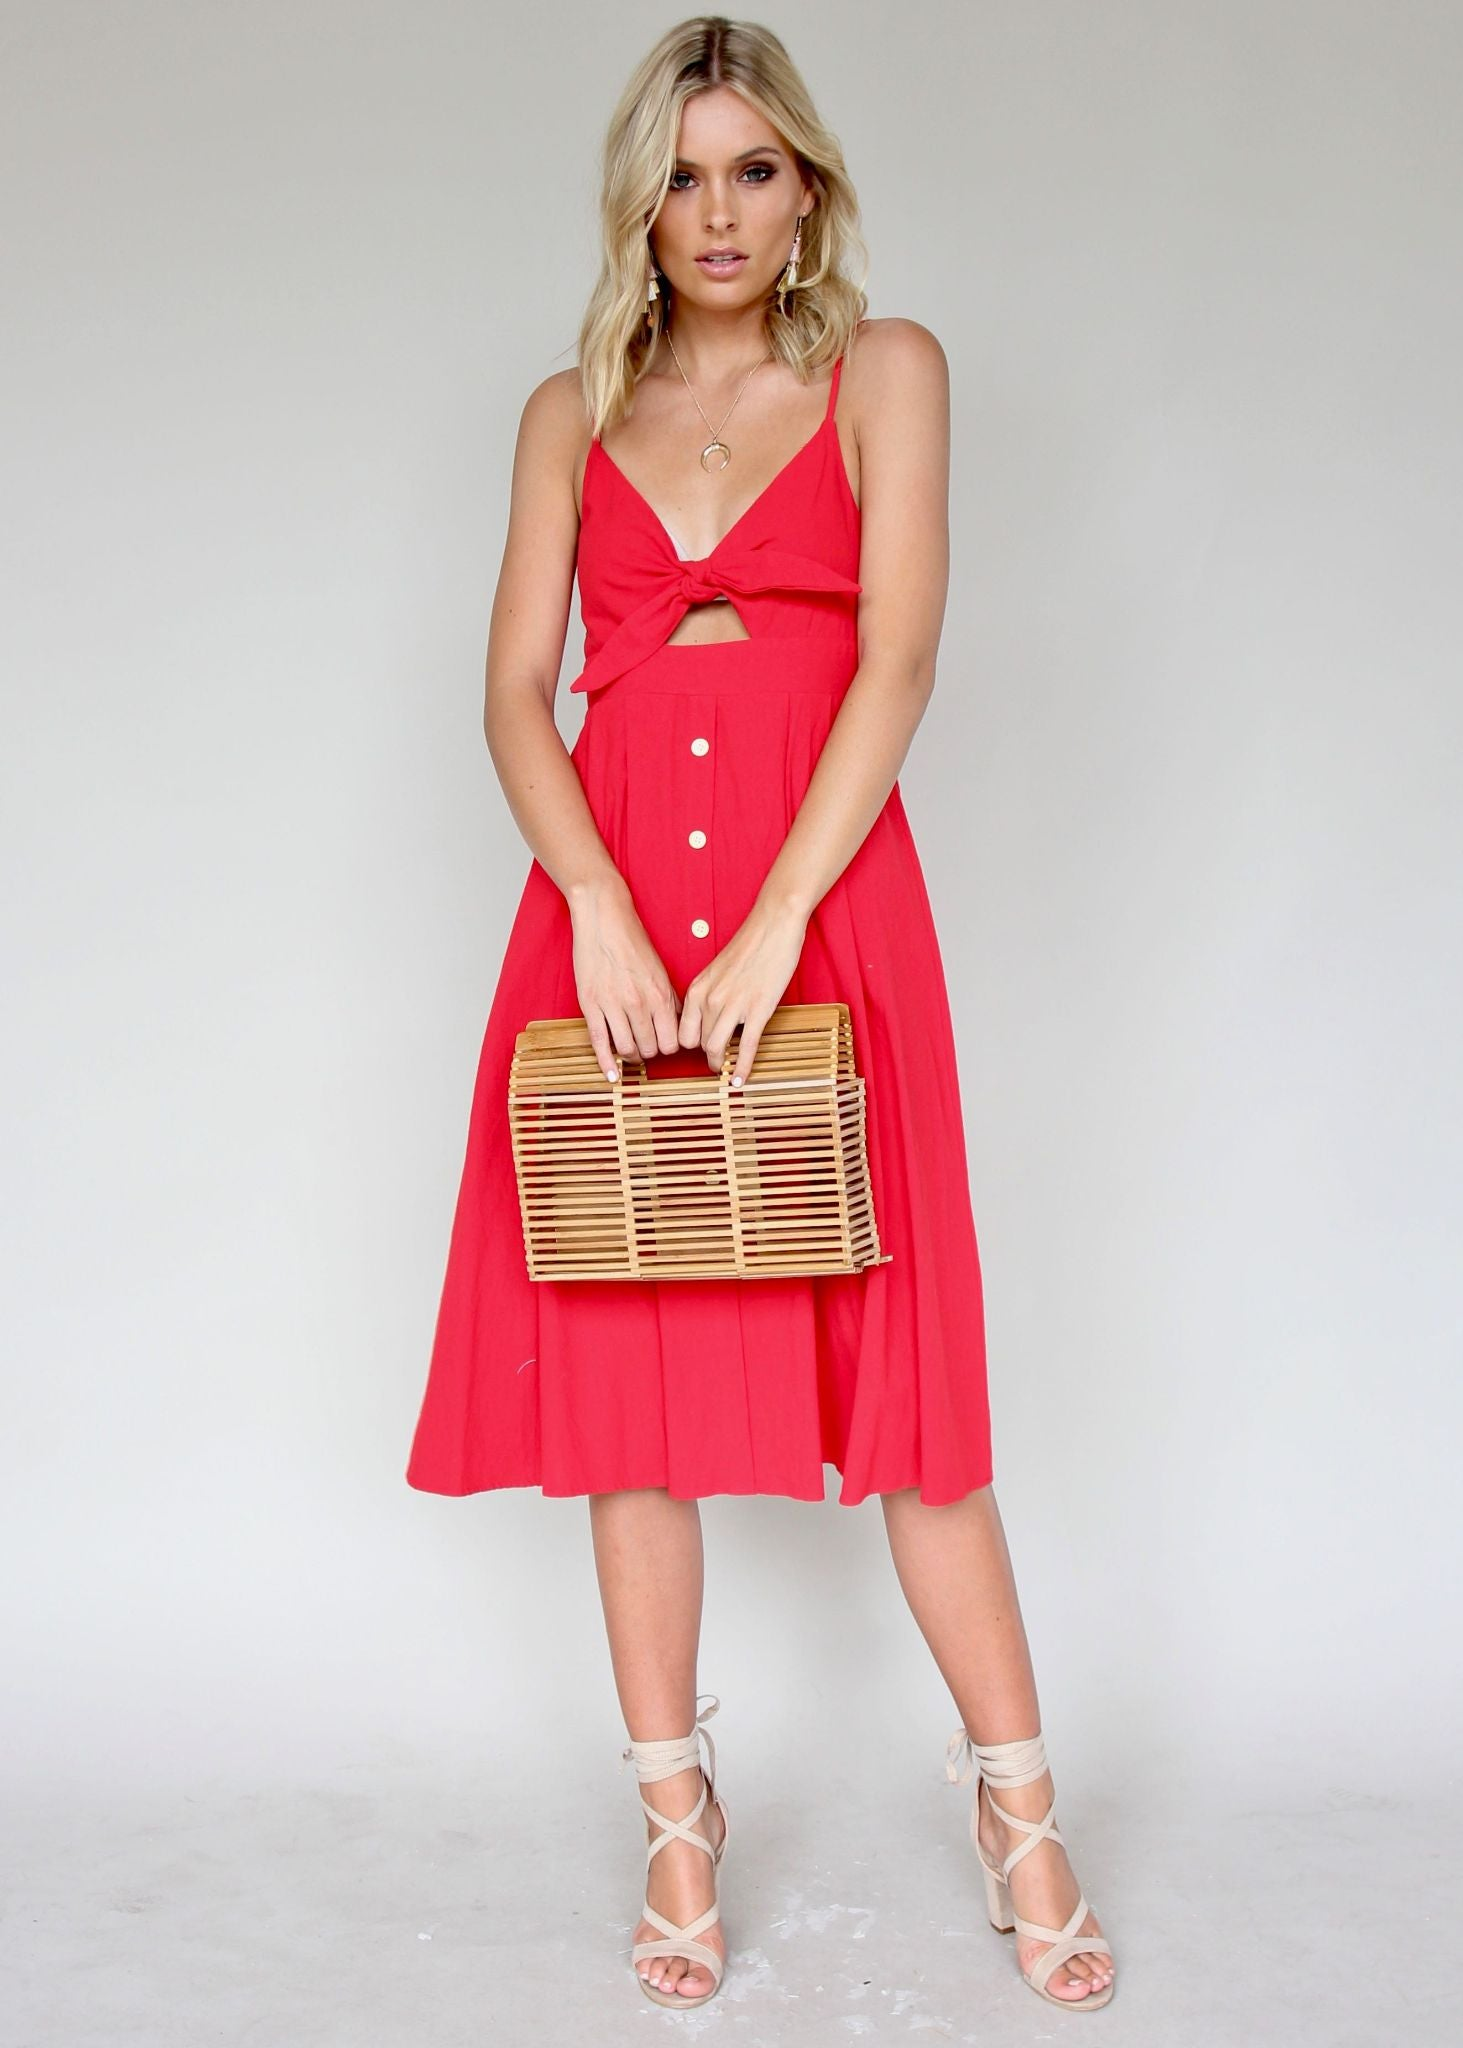 Big City Midi Dress - Red